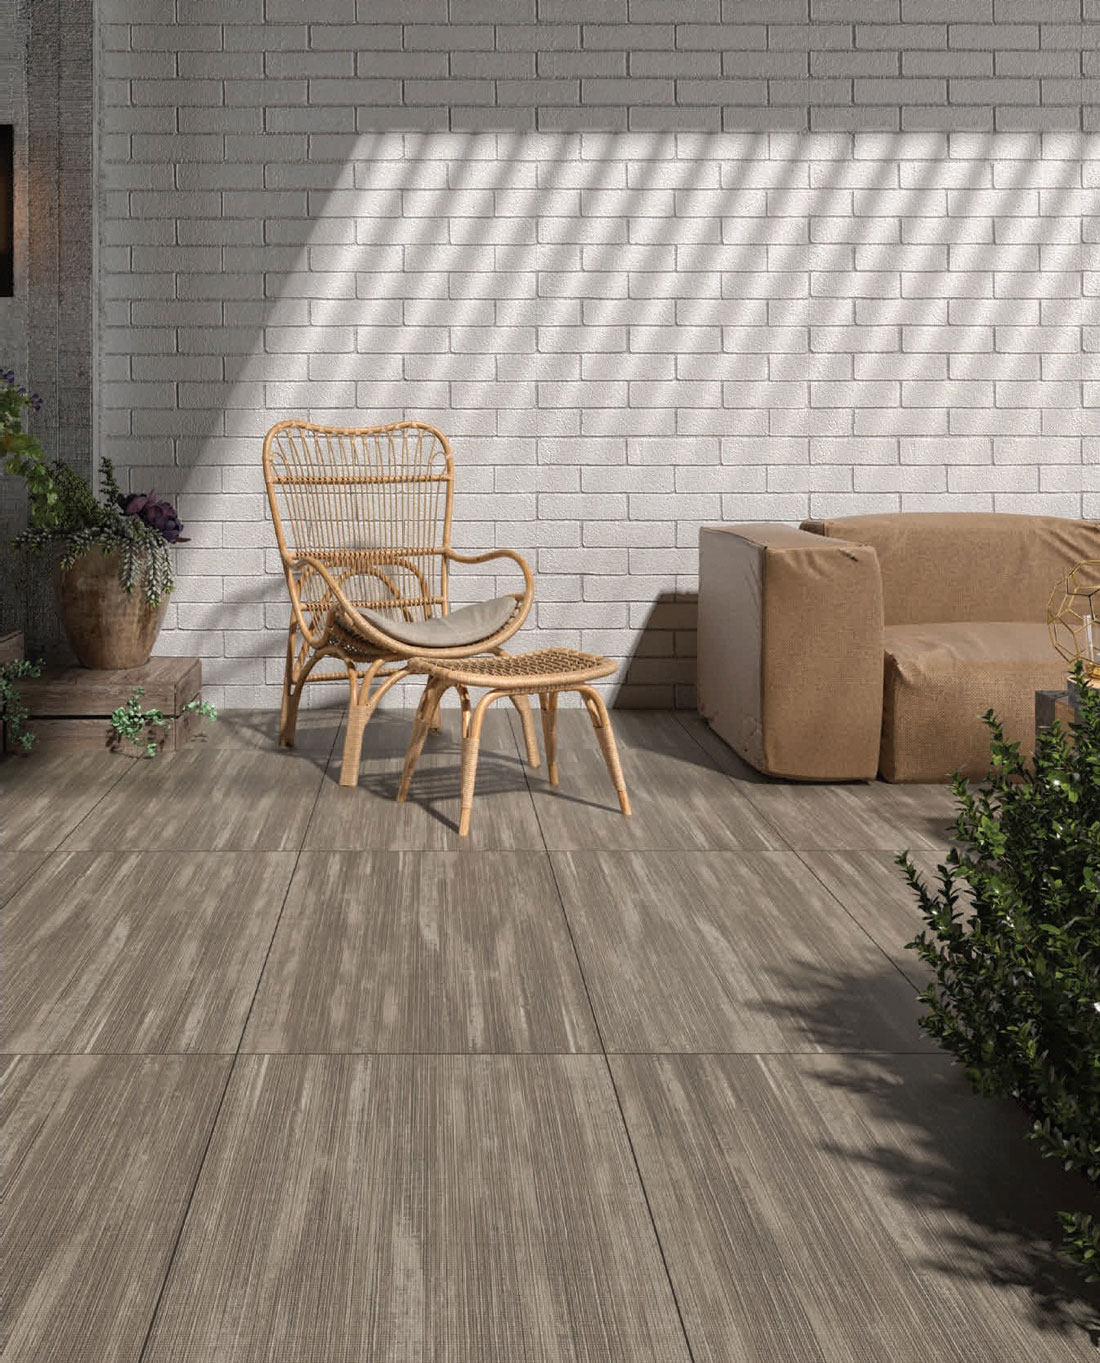 Outdoor Wood Look Tile